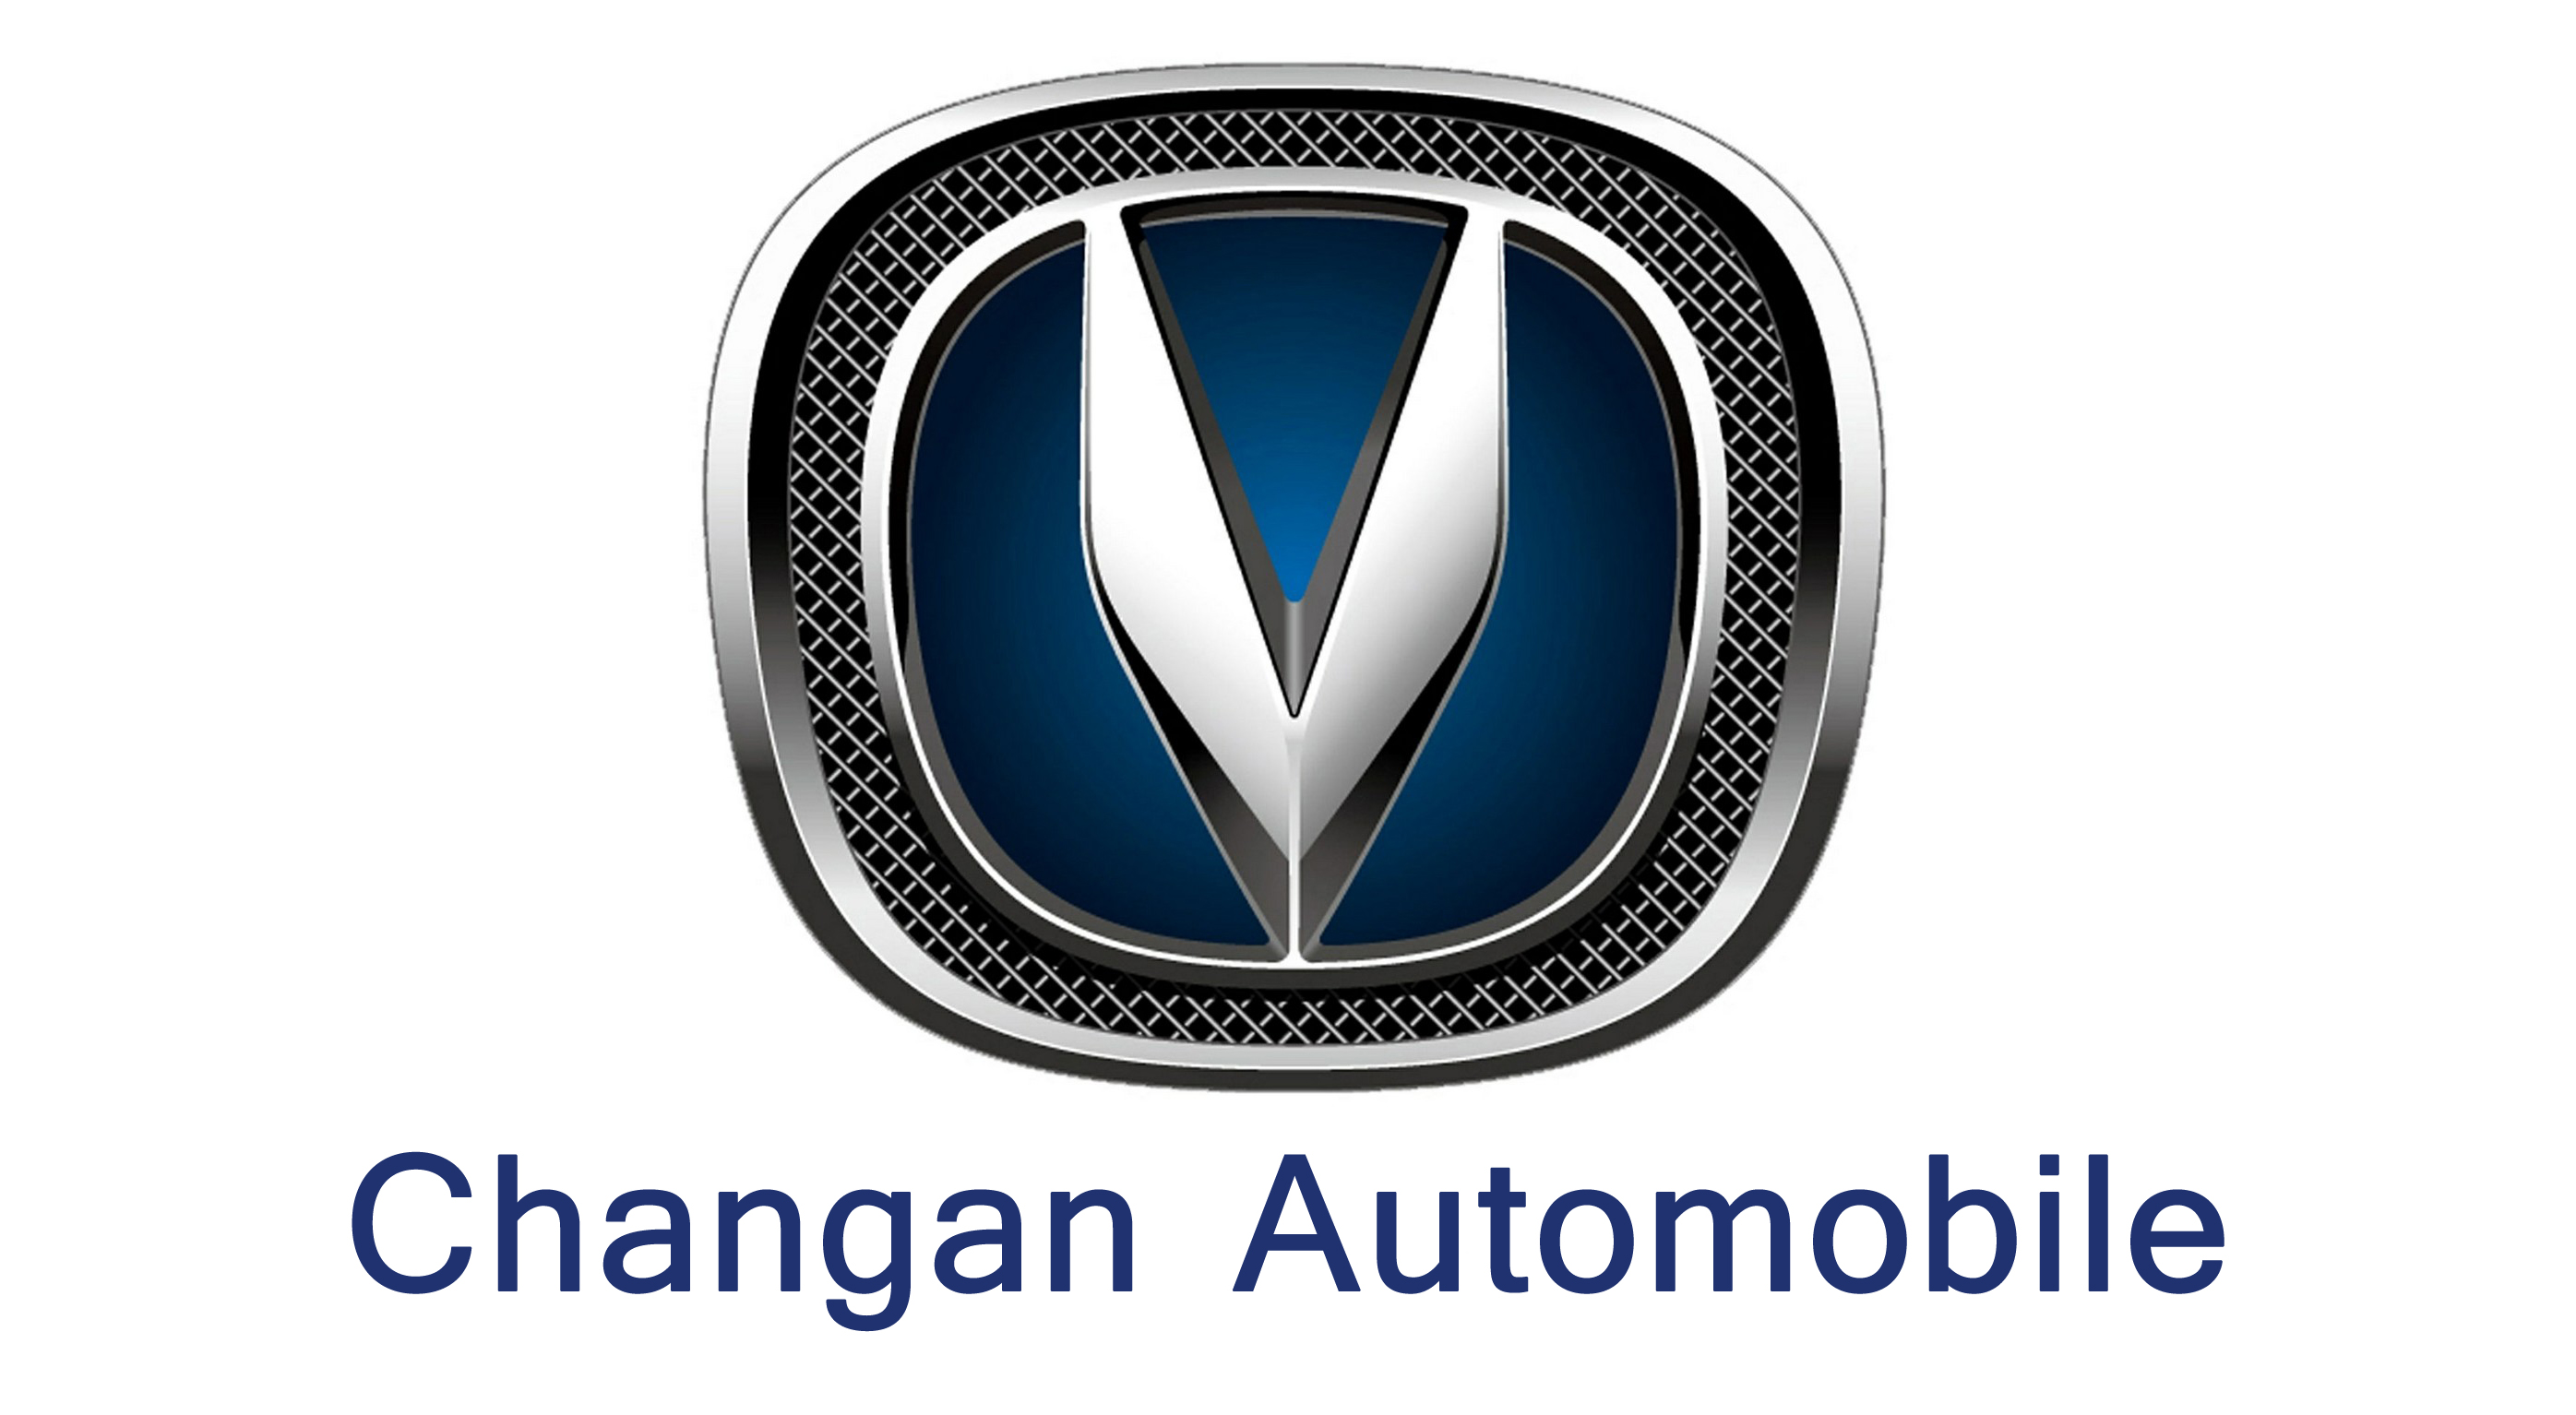 Logos Brands And Logotypes: List Of All Chinese Car Brands [Chinese Car Manufacturers]